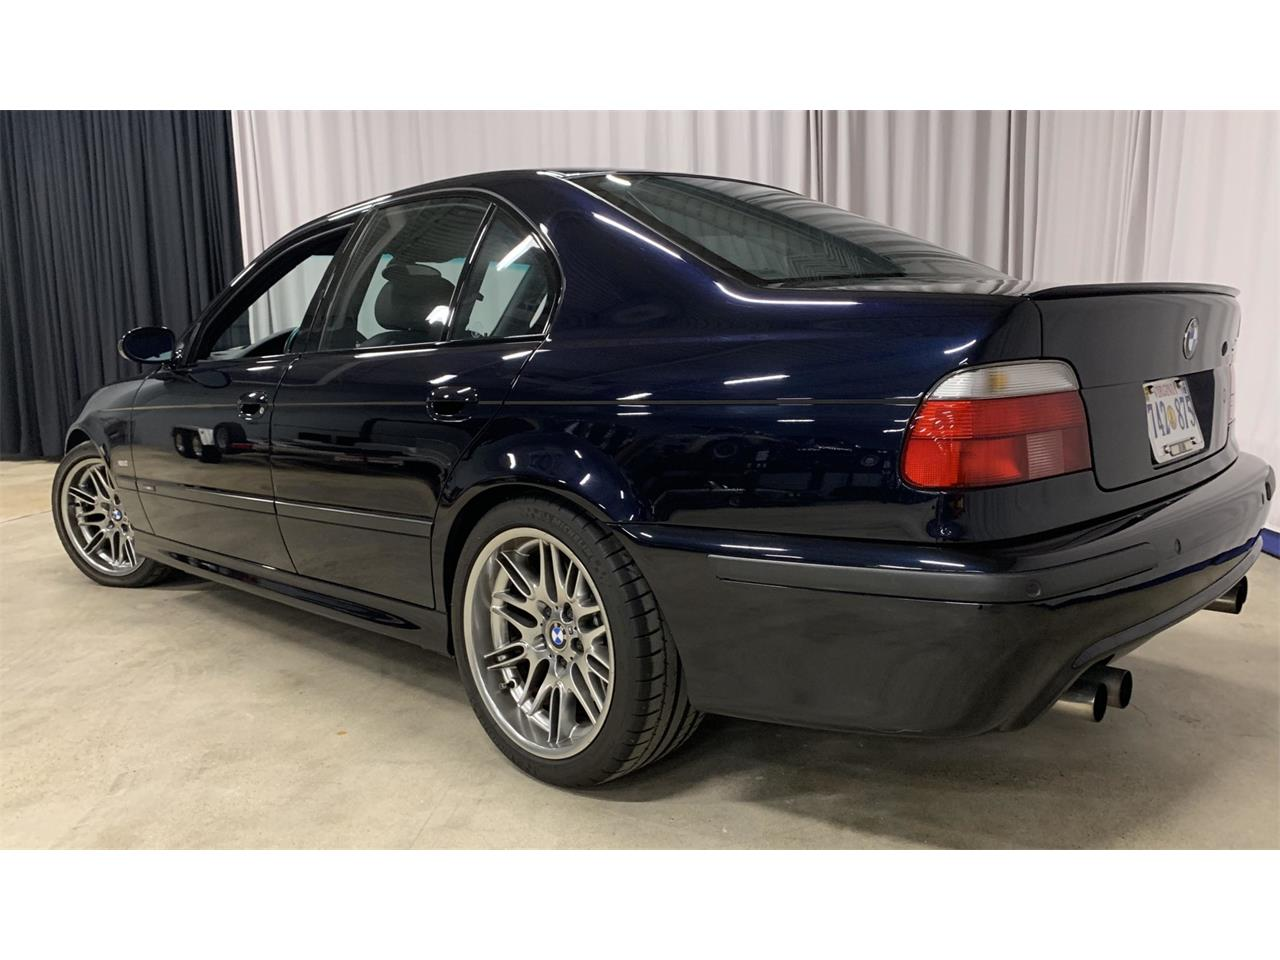 Large Picture of '00 BMW M5 Auction Vehicle - QCNM